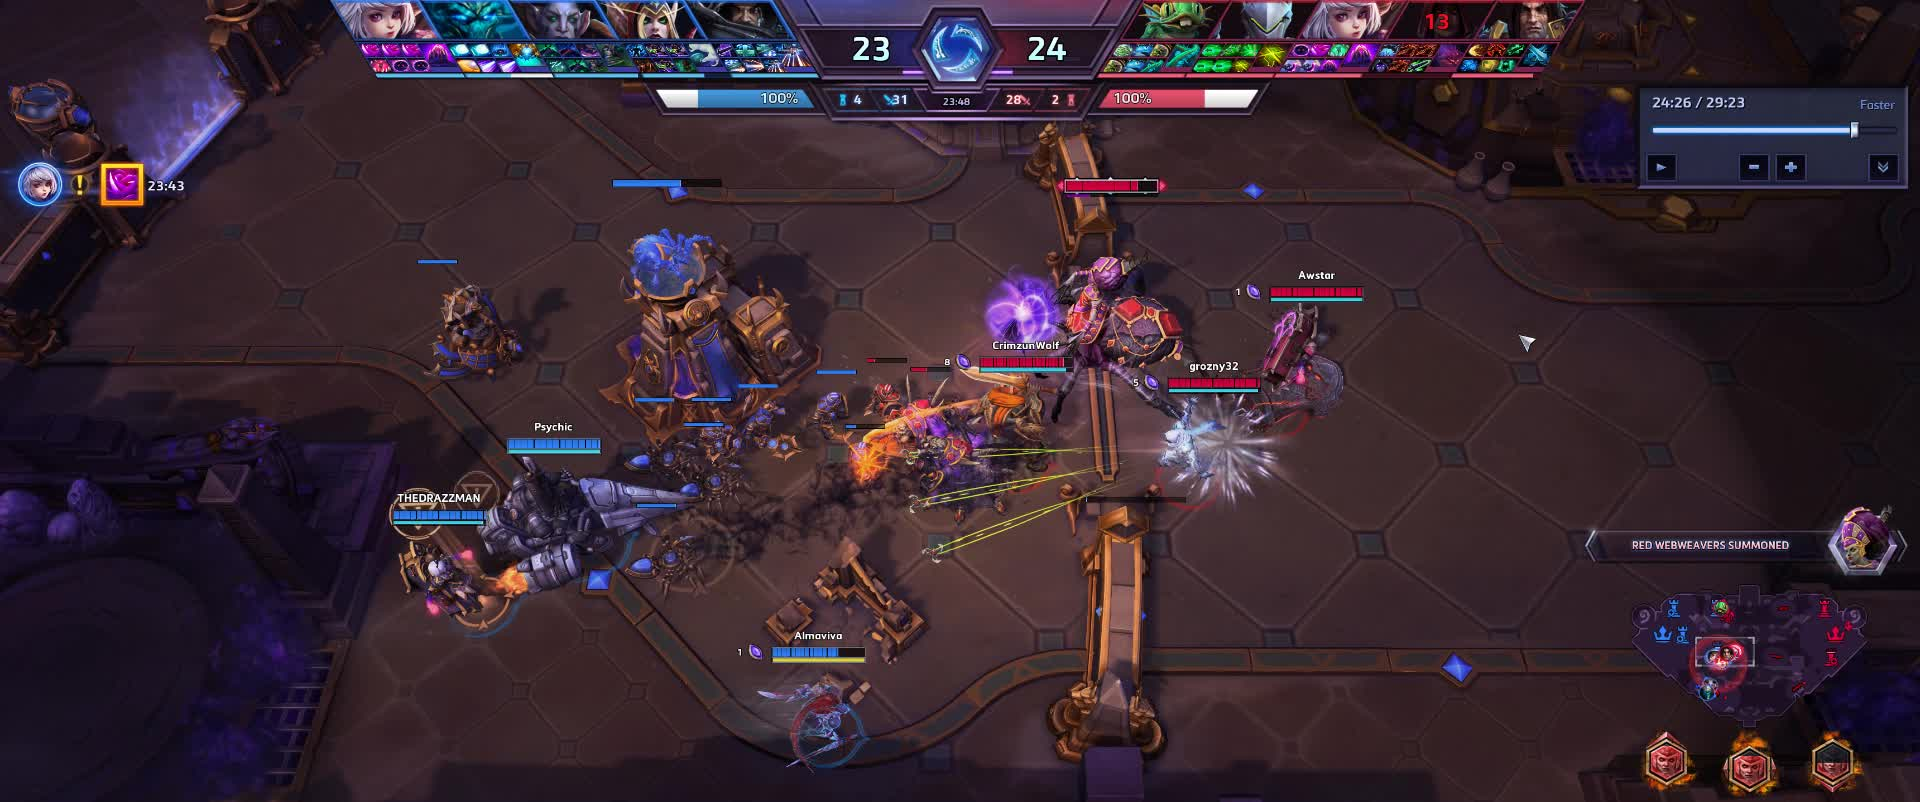 heroesofthestorm, Heroes of the Storm 2018.11.15 - 21.33.44.04 GIFs